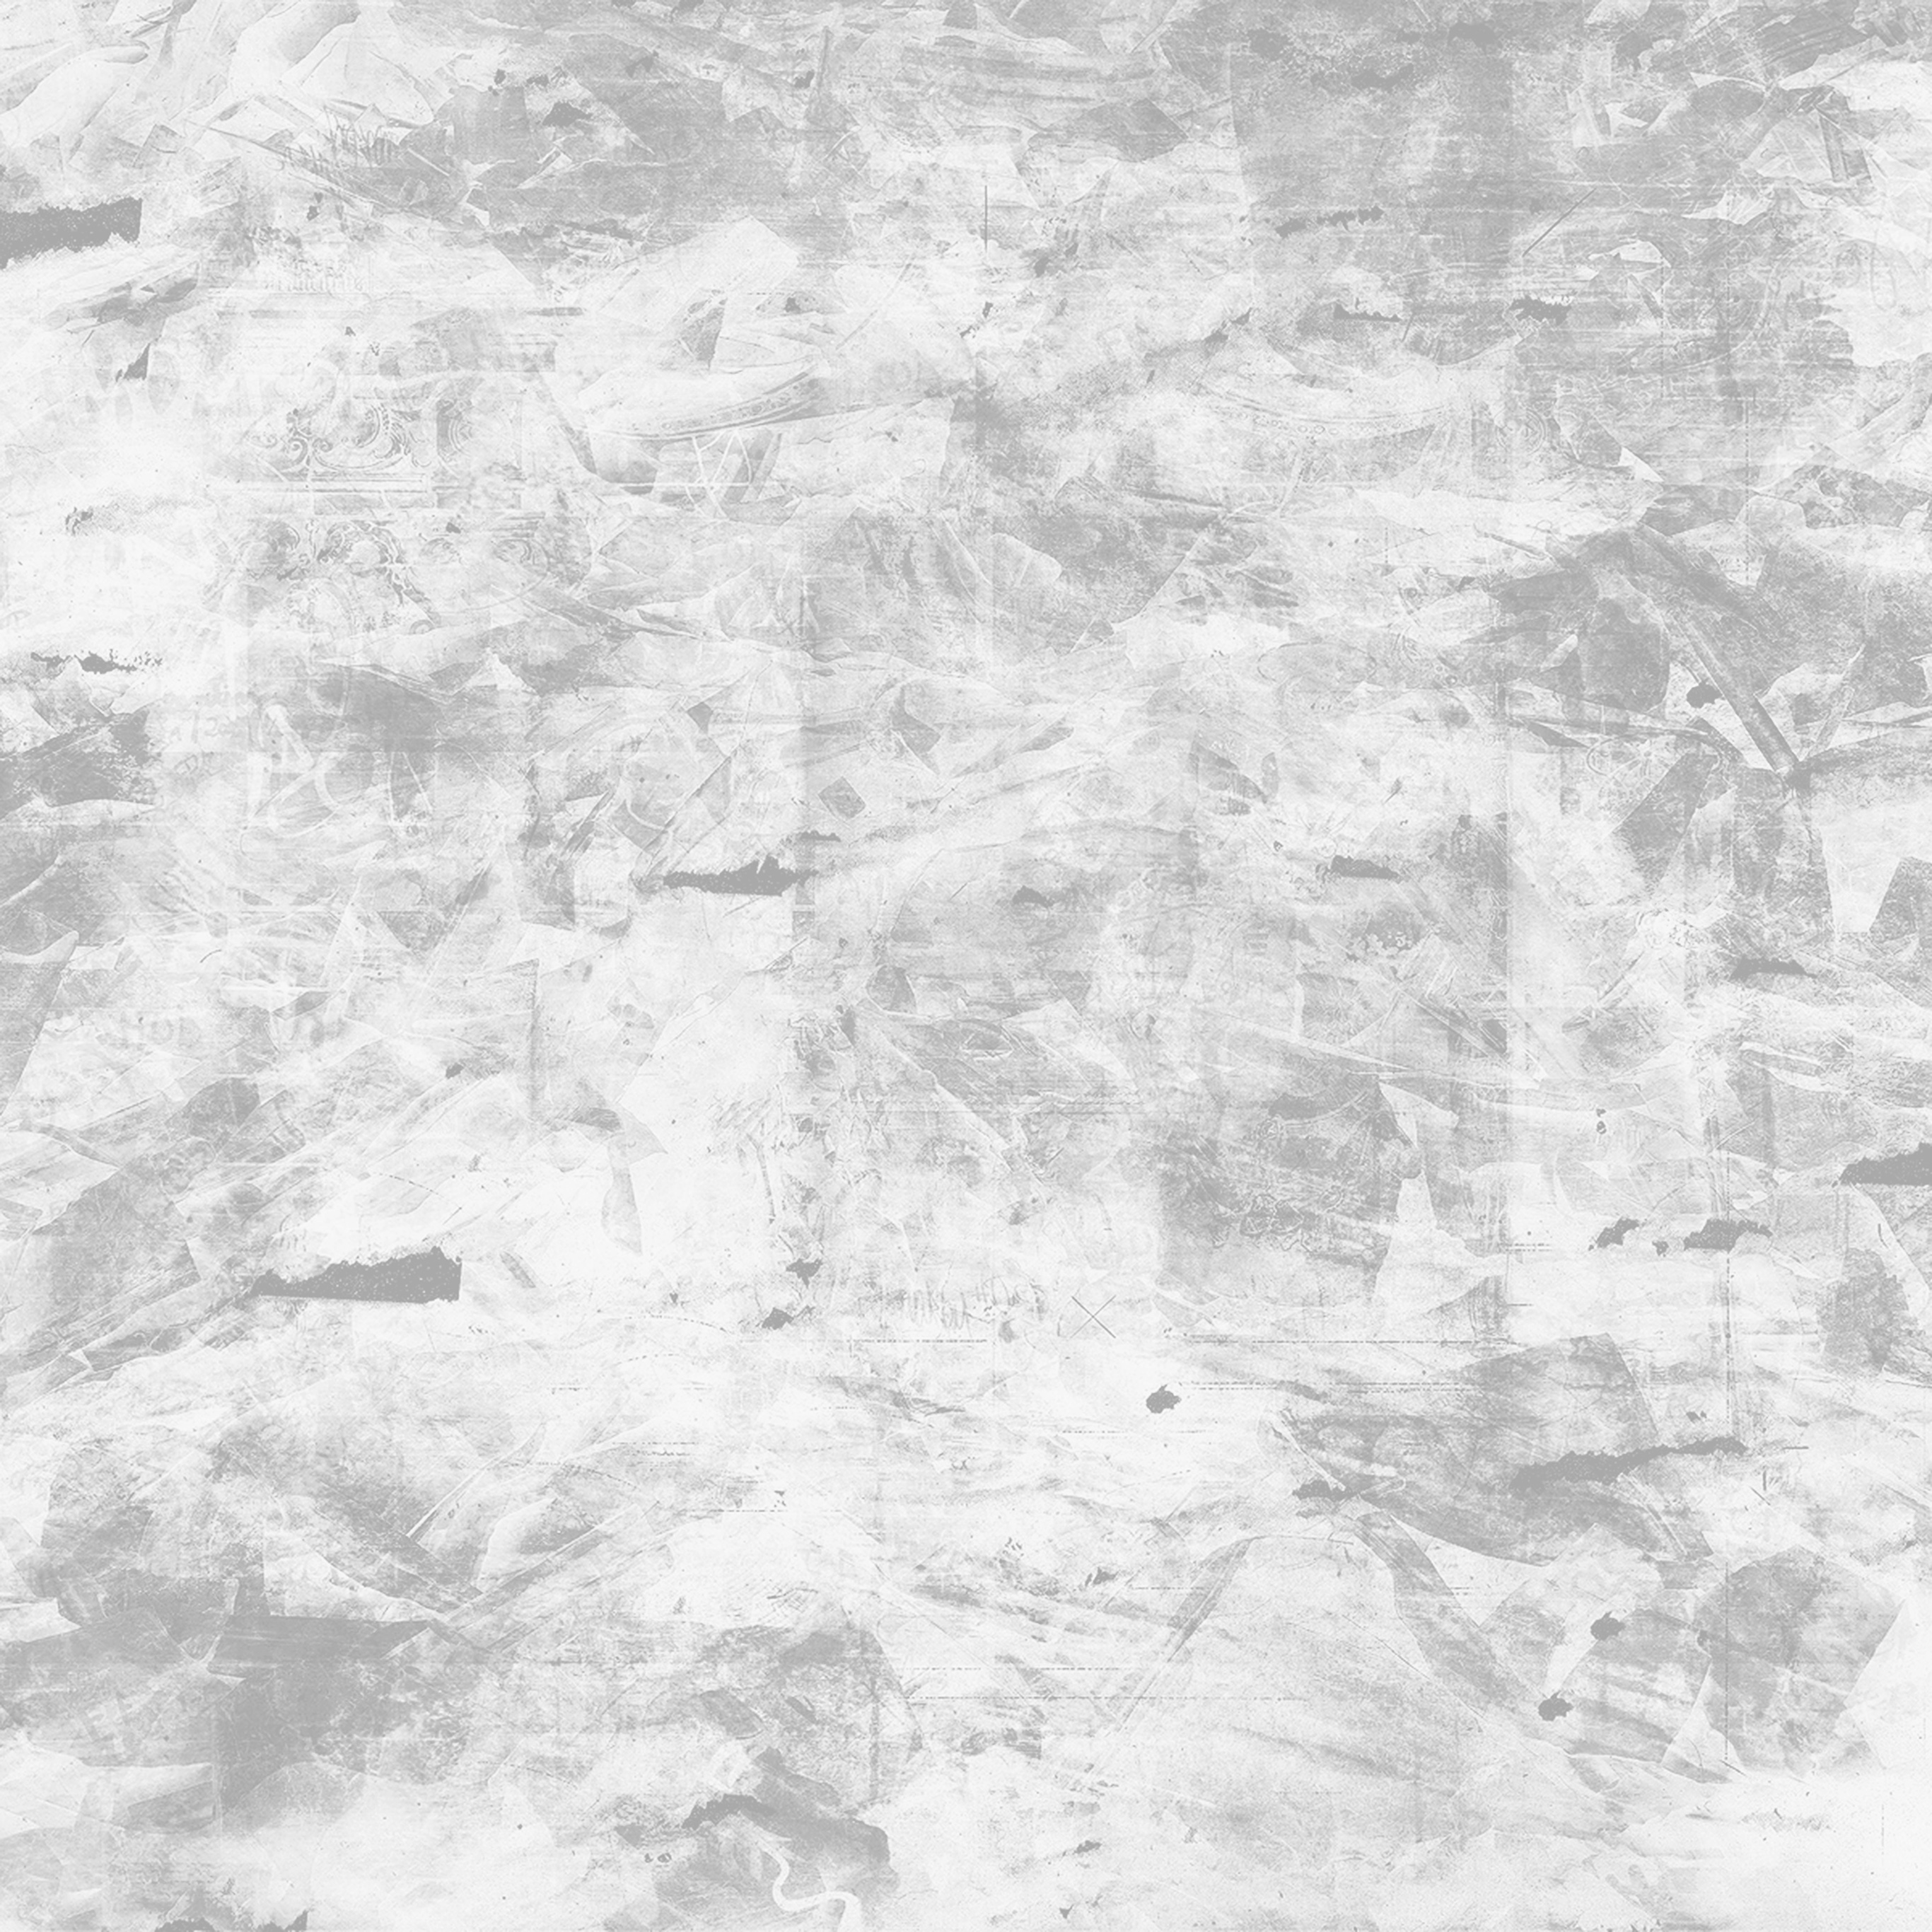 Amazing Wallpaper Marble Ios - papers  Graphic_789774.jpg